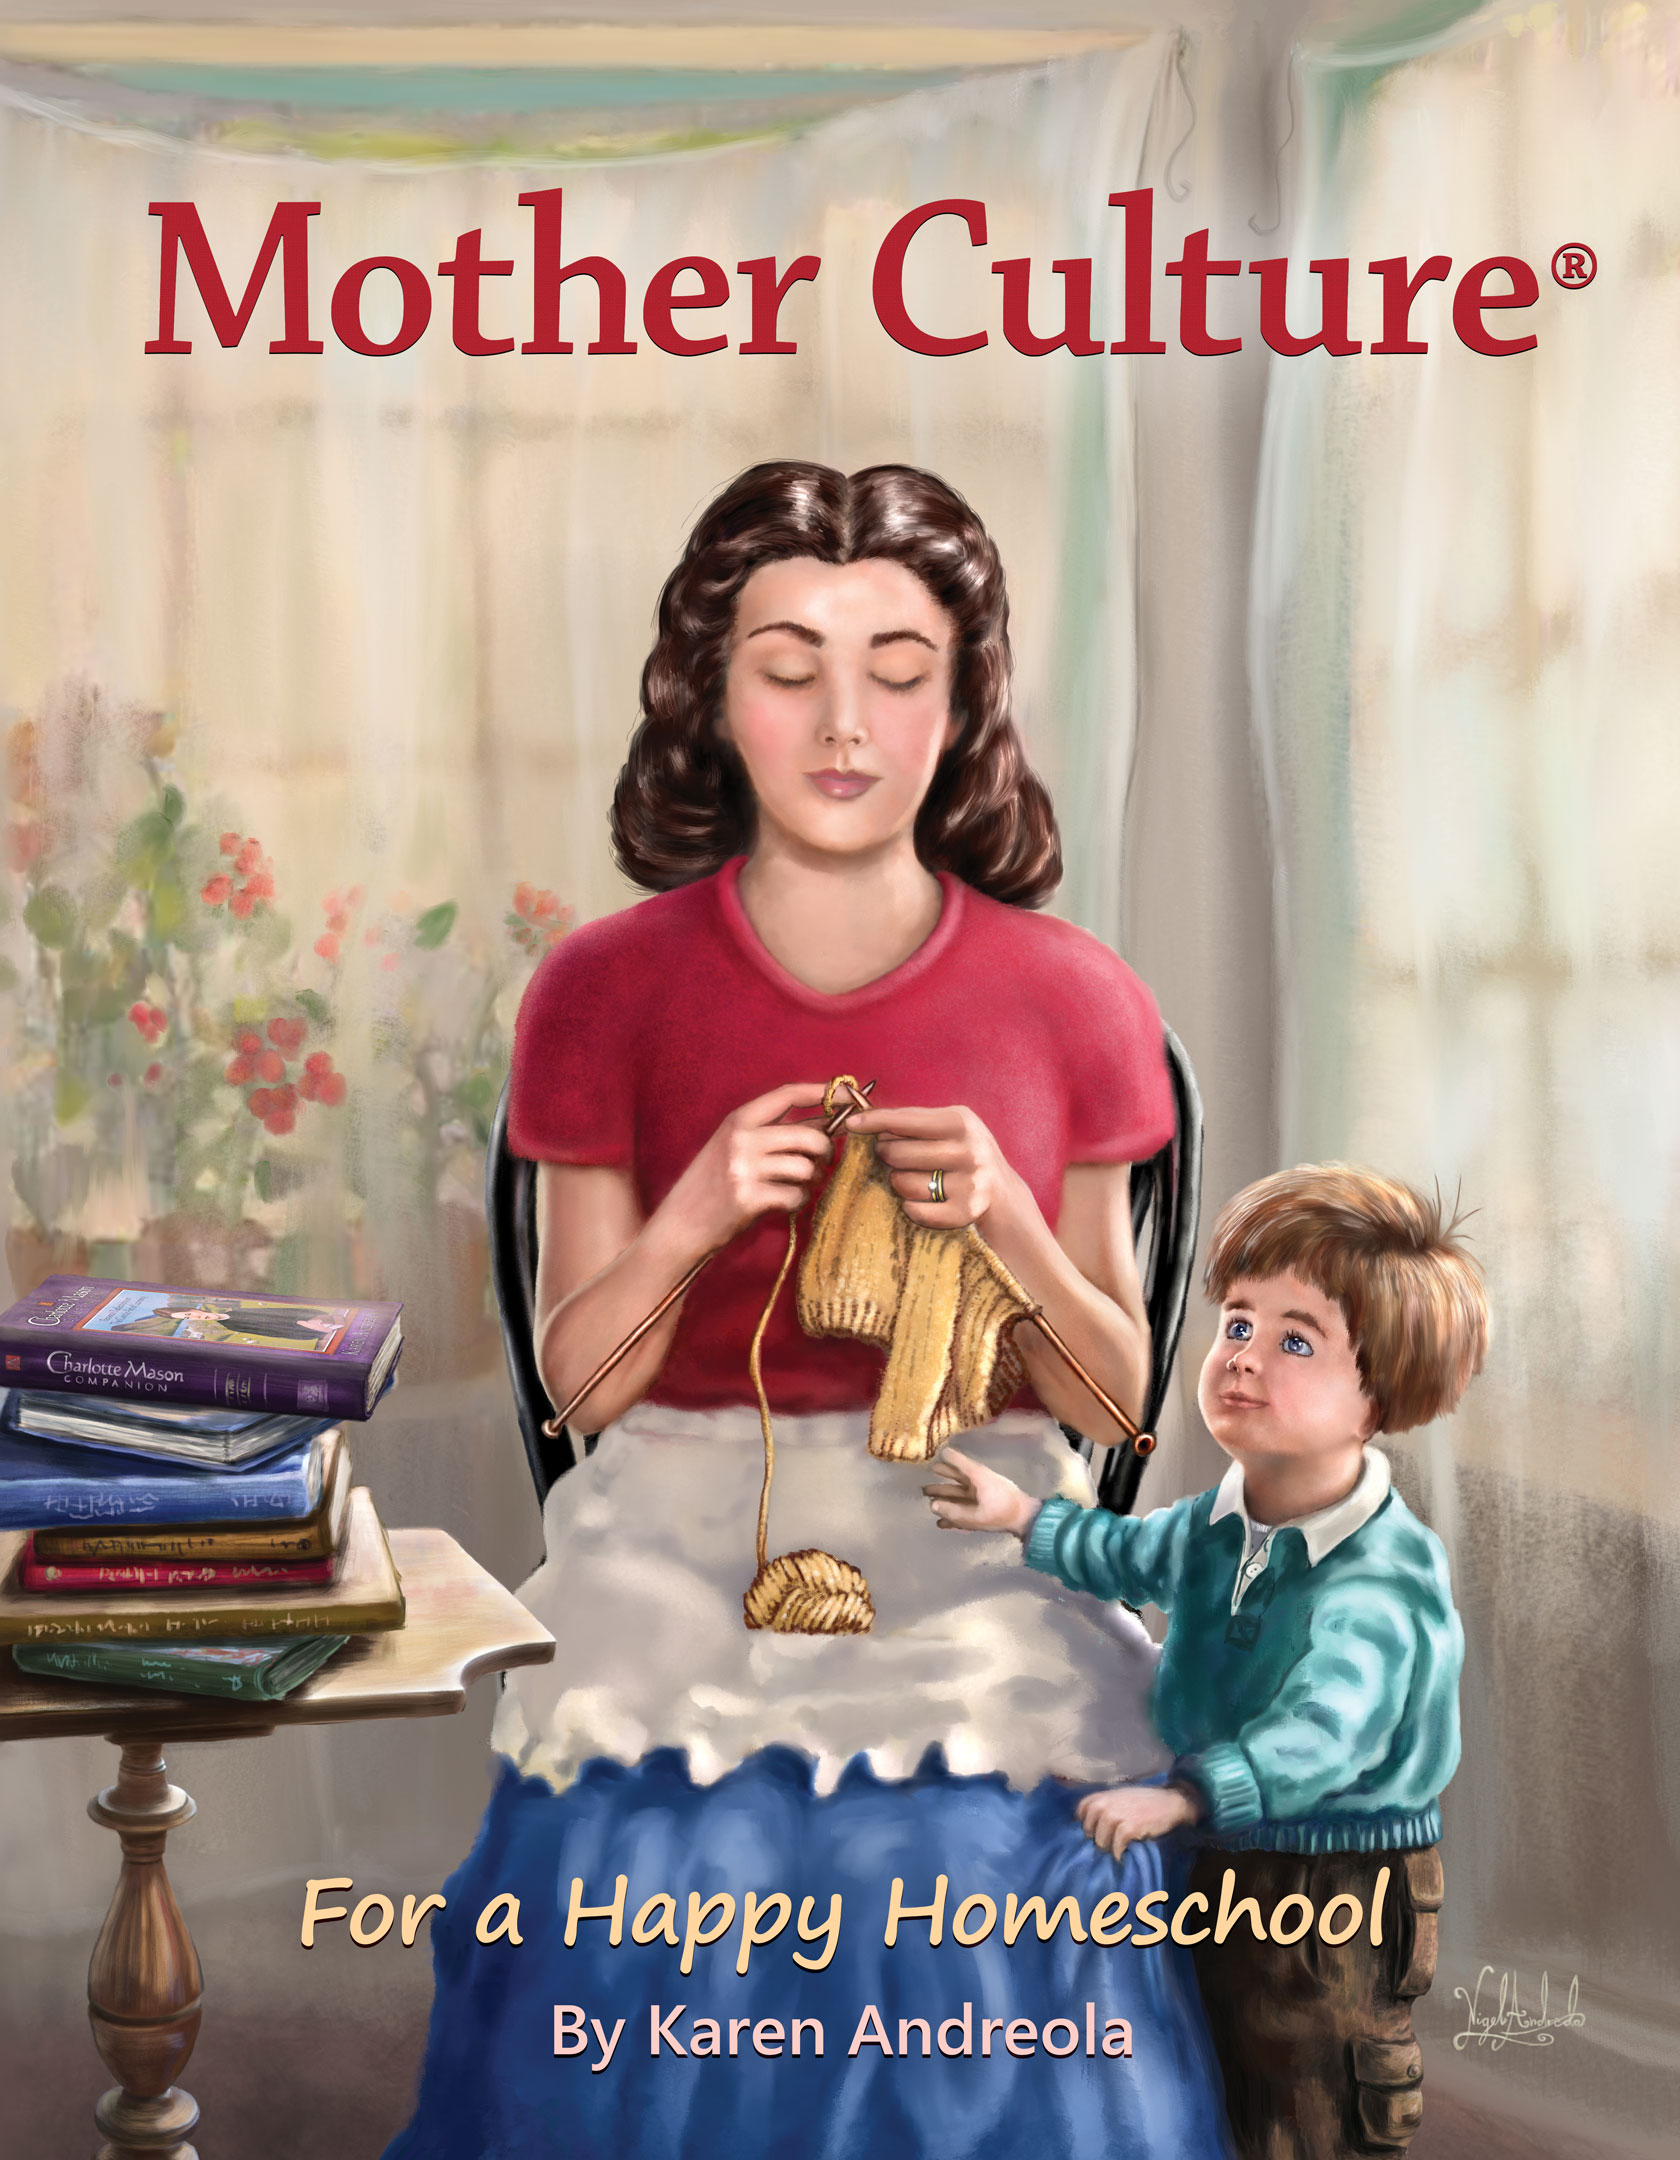 """Mother Culture"" step into peace and serenity in your homeschool"